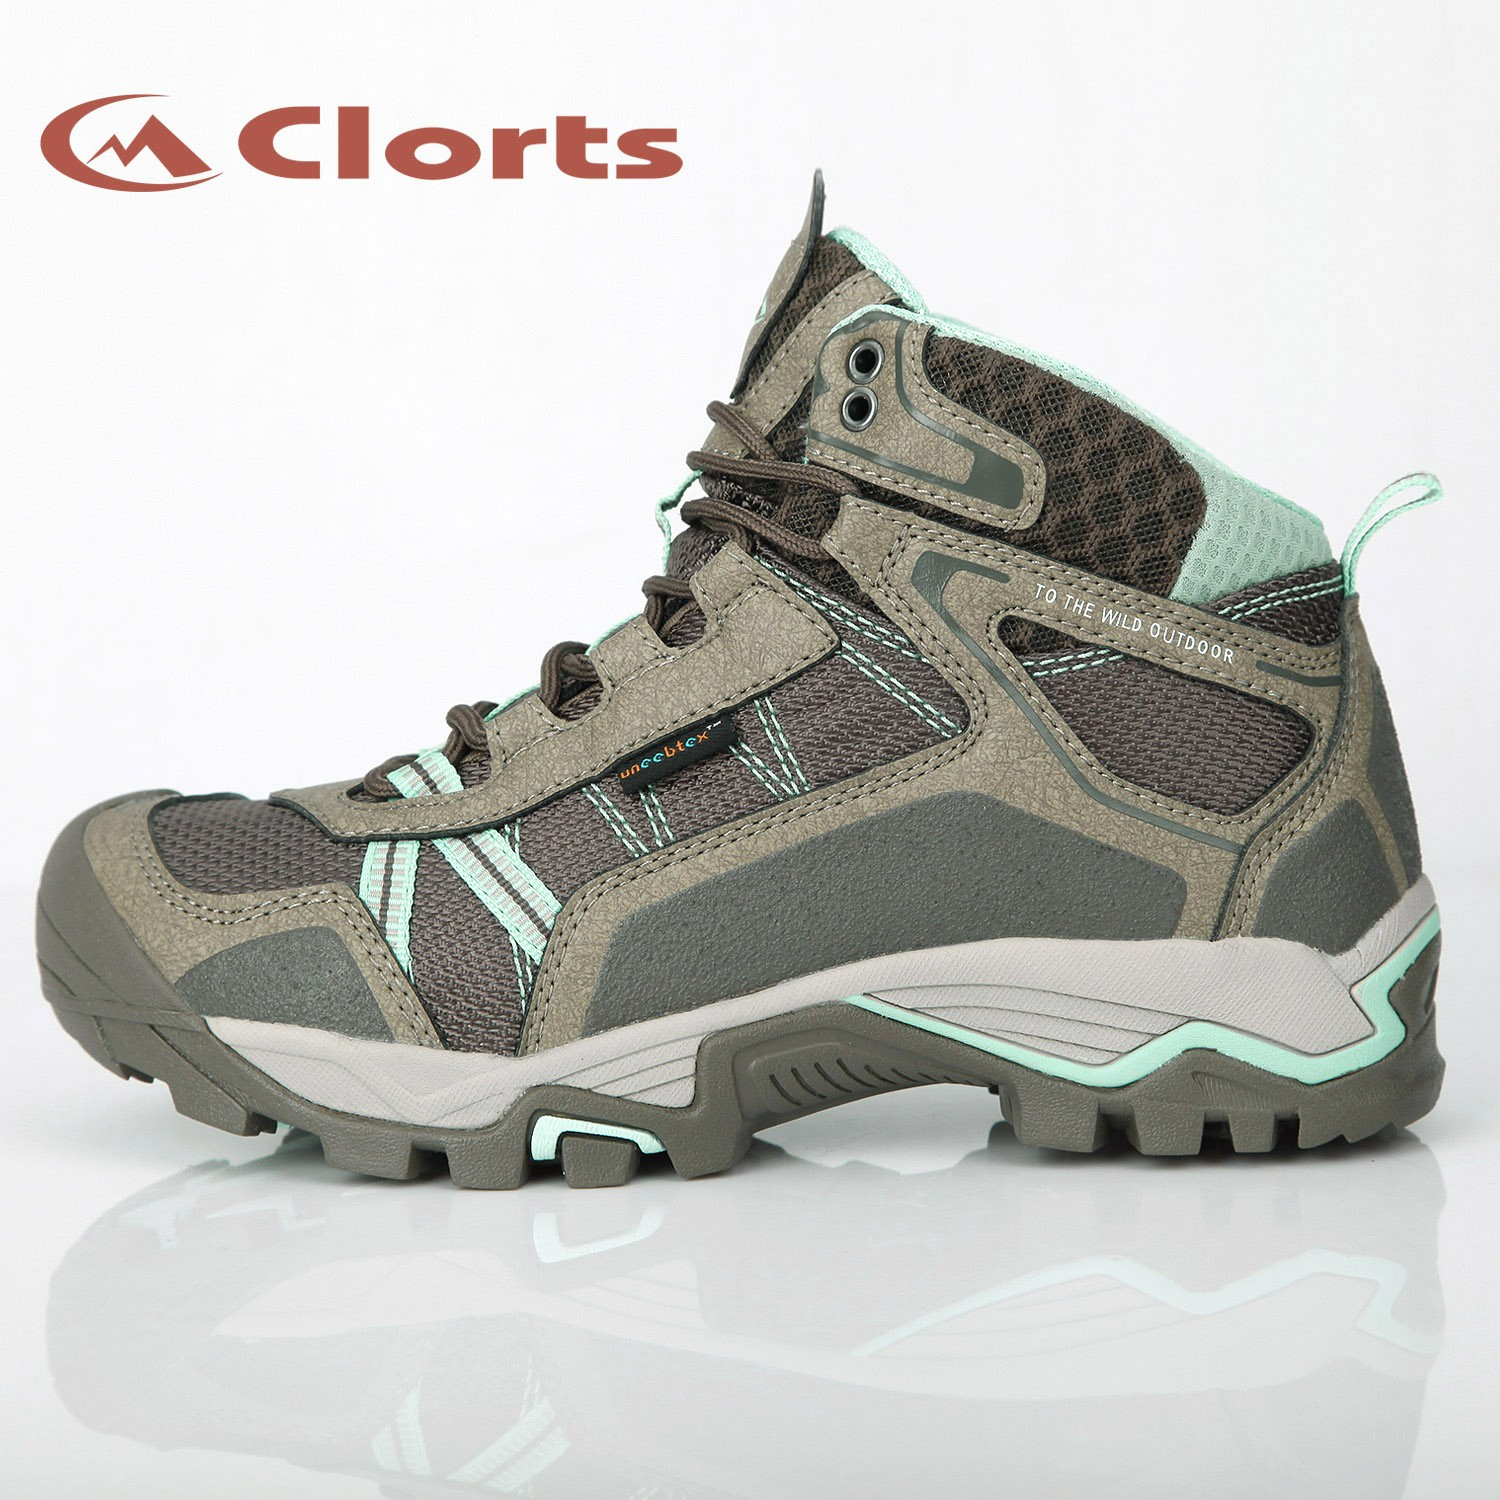 Lightweight Waterproof Mountaineering Boots Hiking Shoes